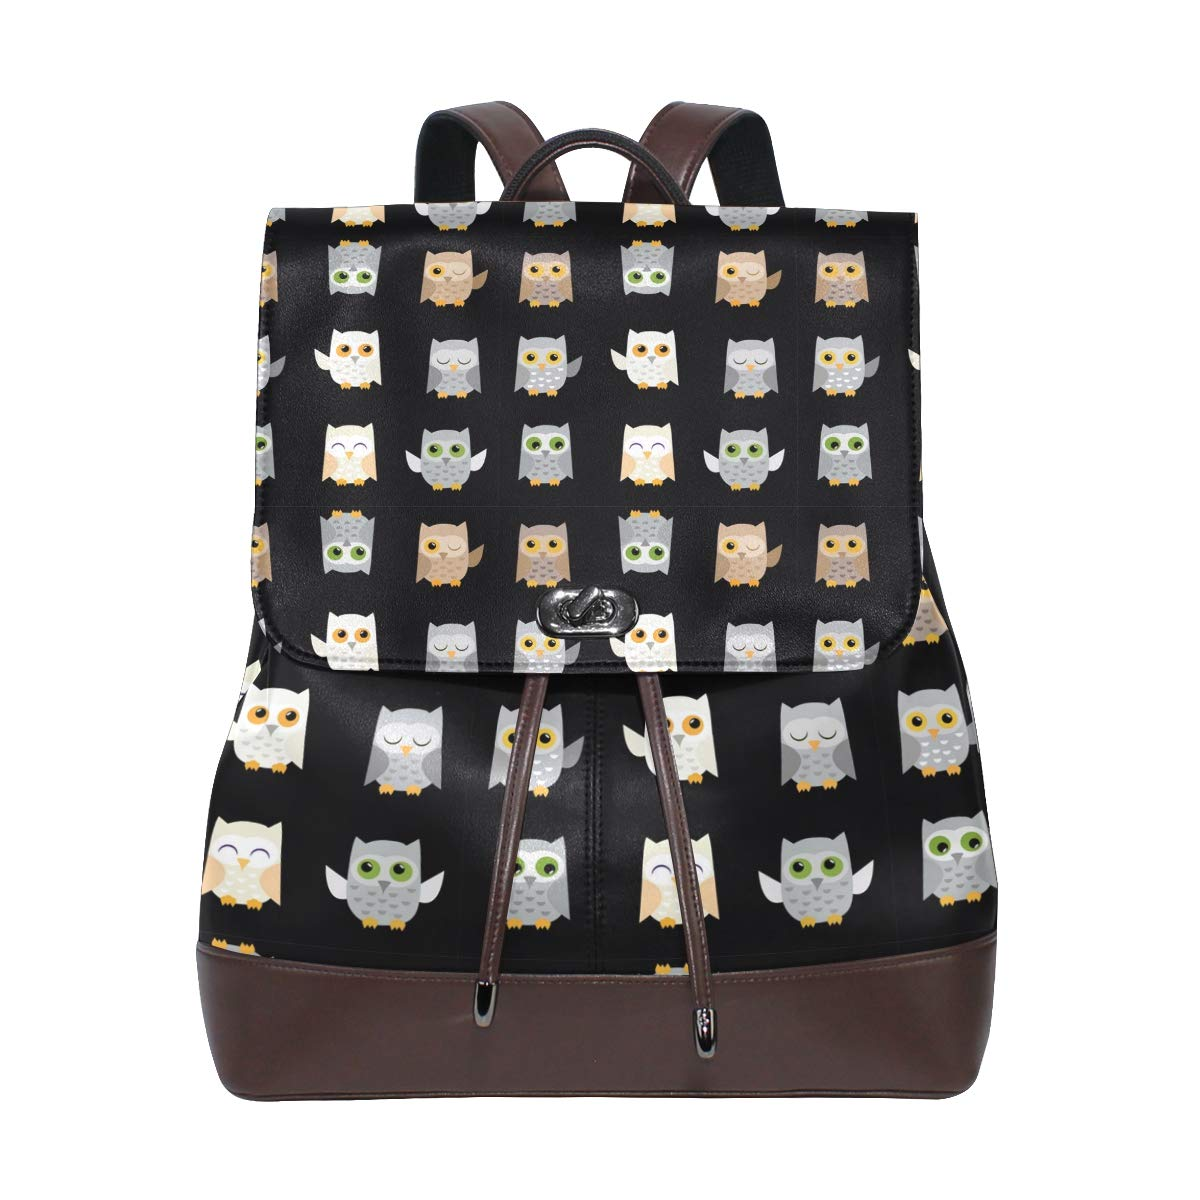 Leather Owl Backpack Daypack Bag Women